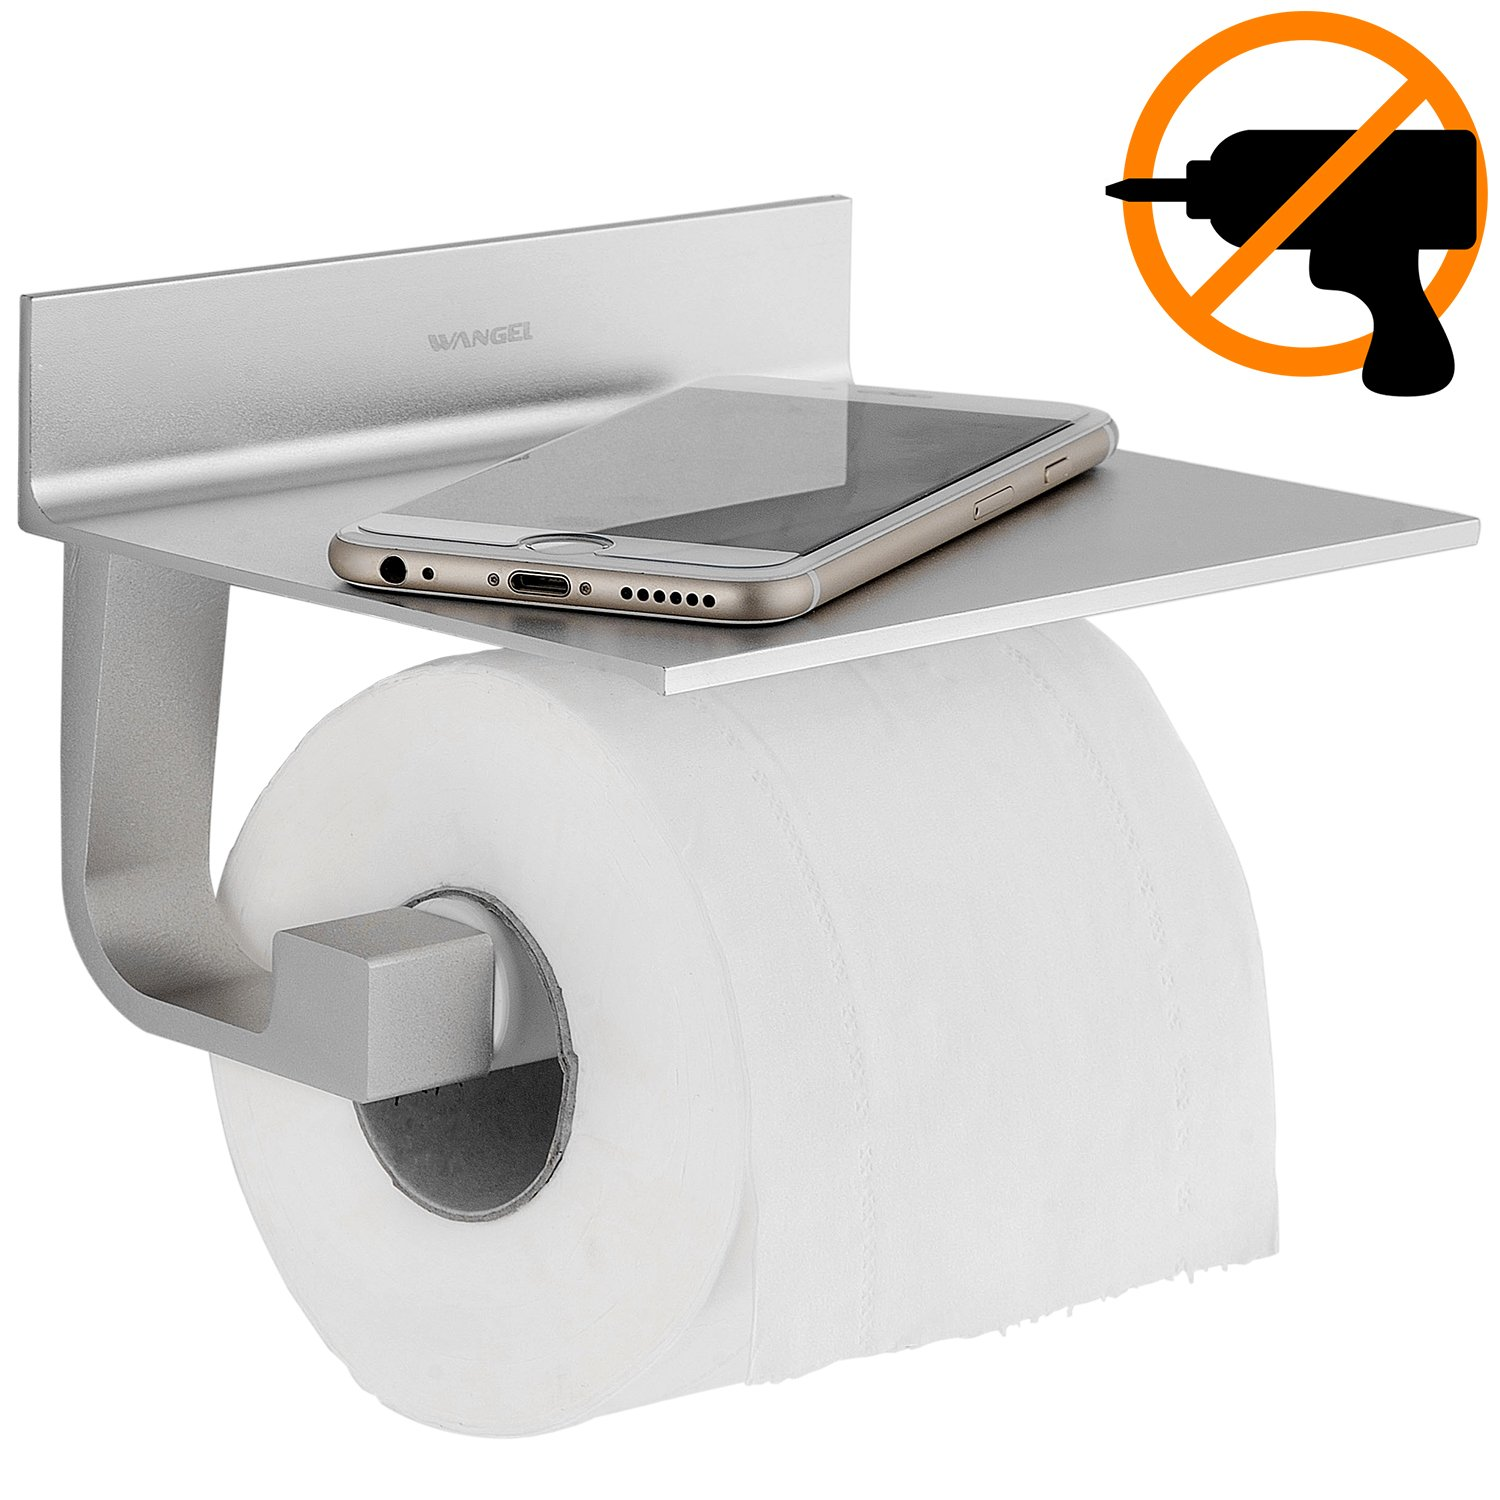 Wangel Toilet Paper Holder for Most Size Paper Rolls, Patented Glue + 3M Self-Adhesive, Aluminum